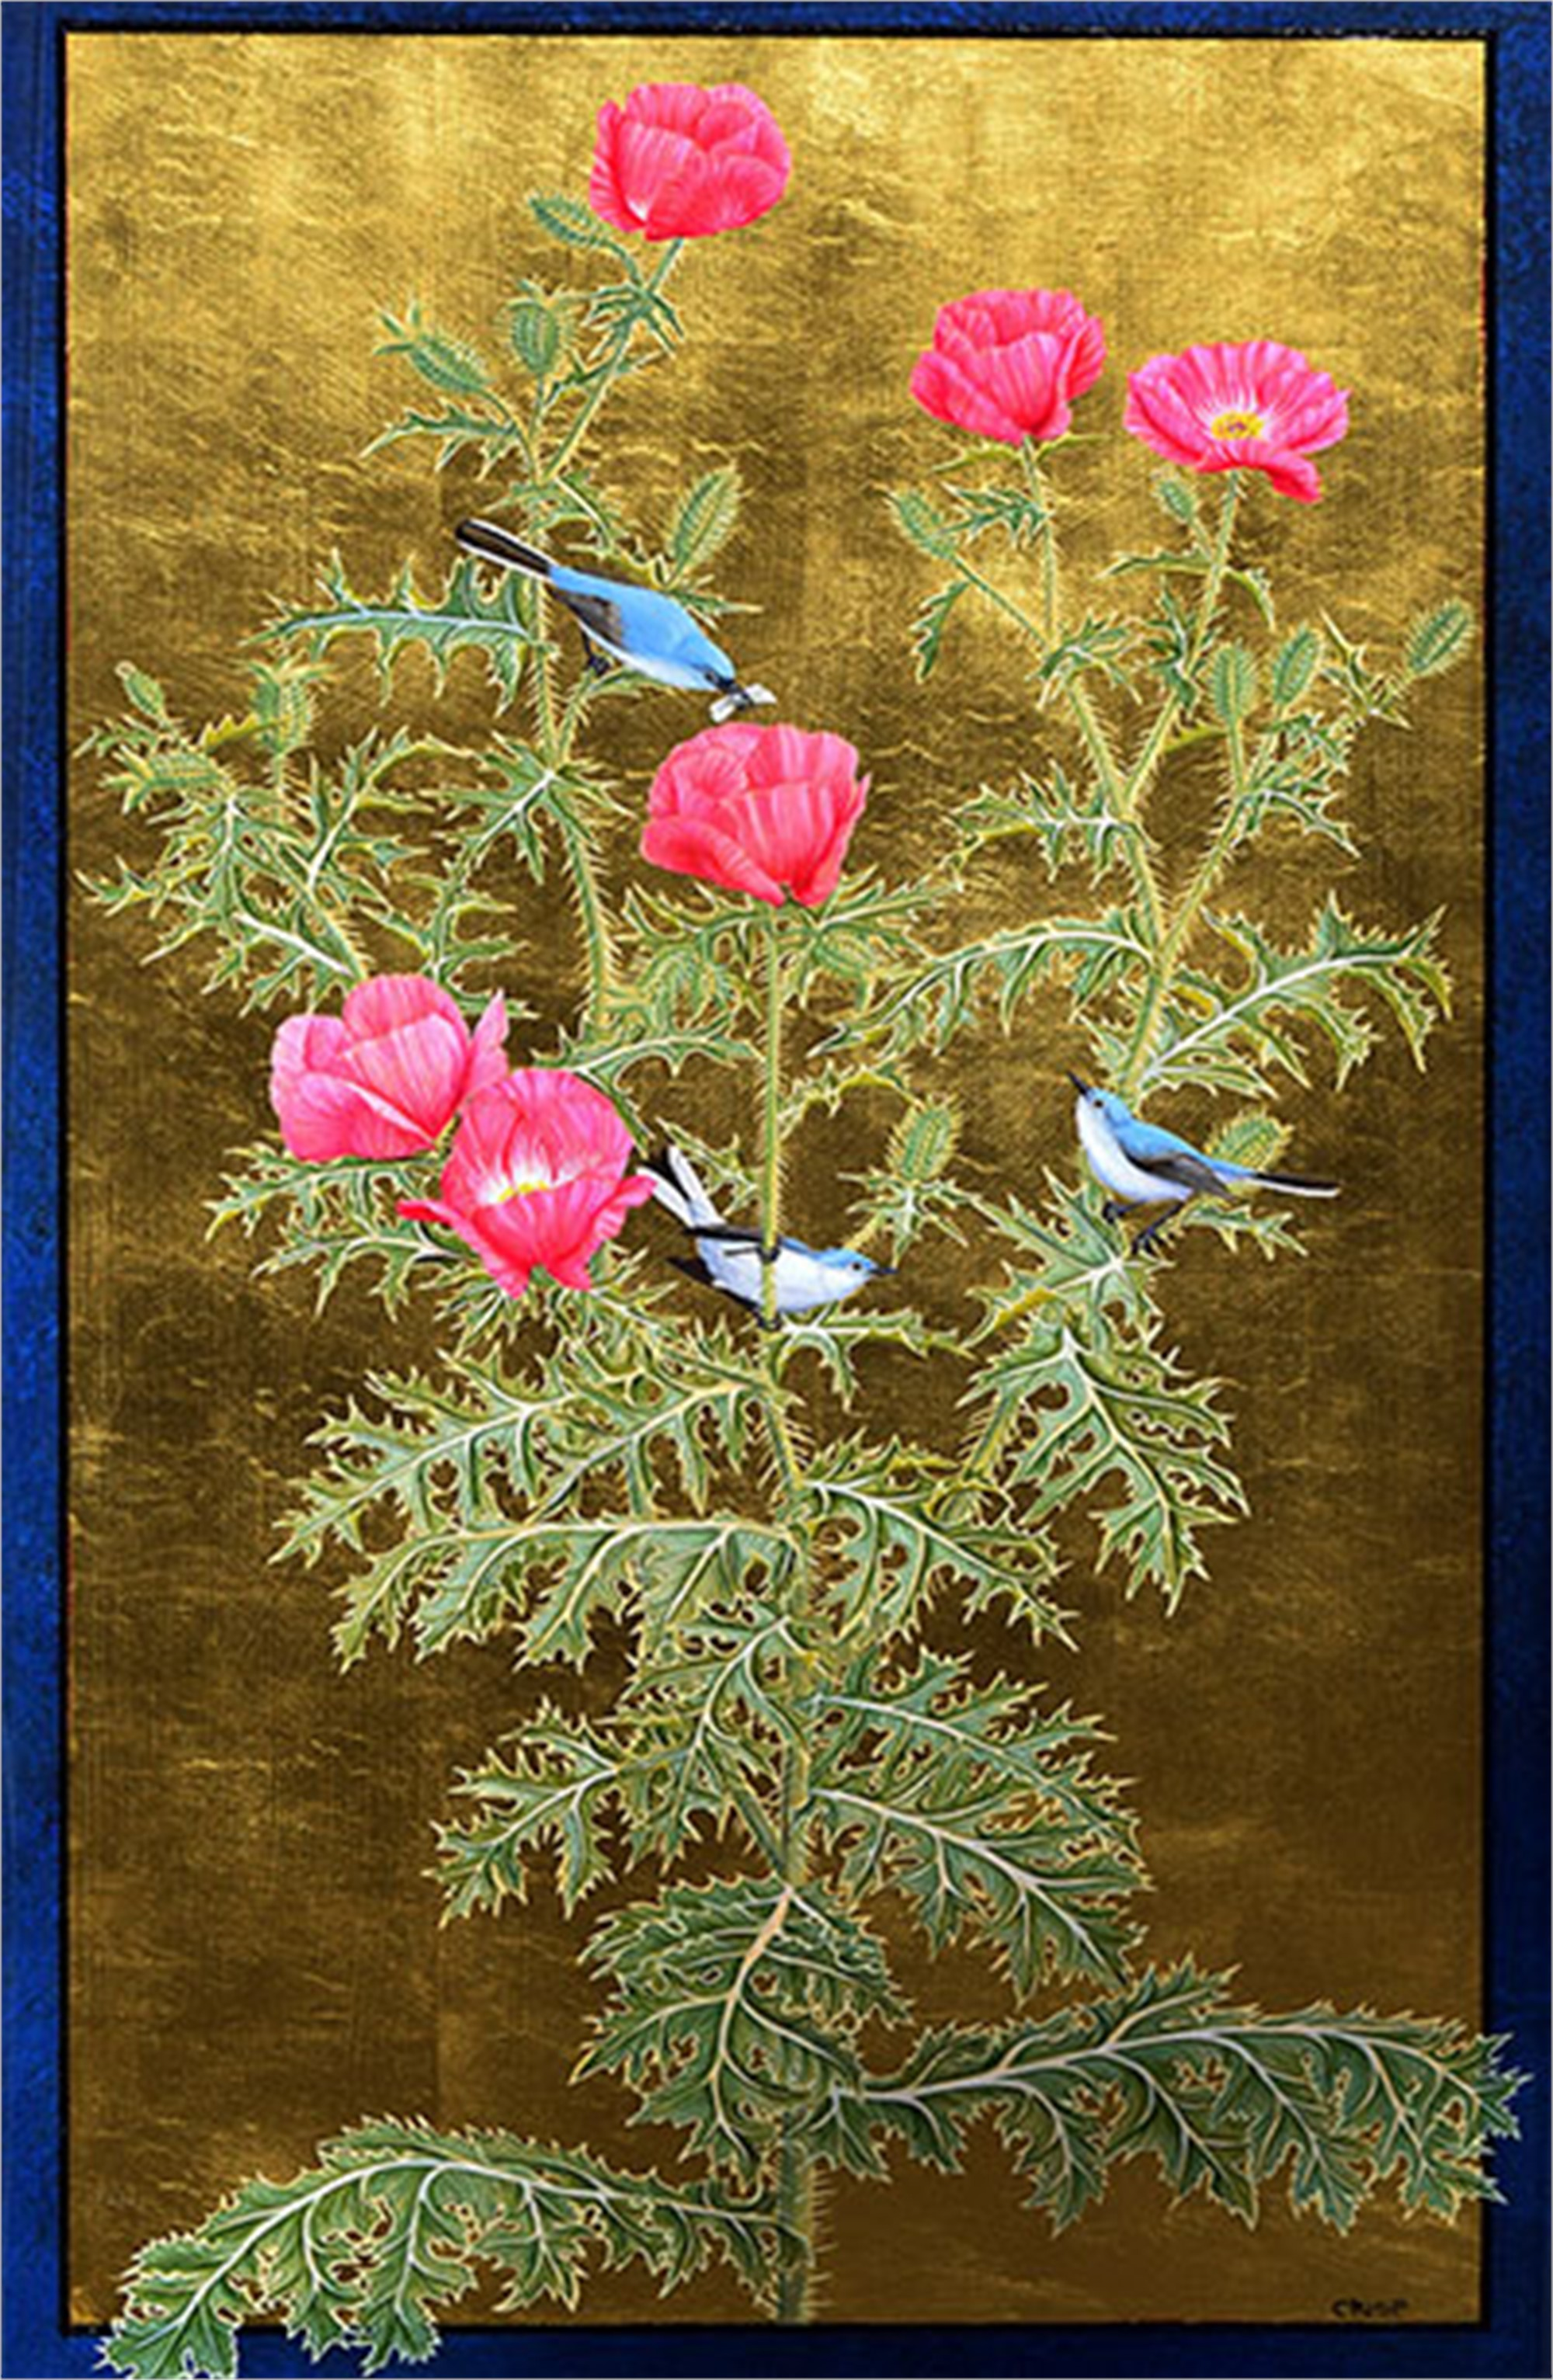 Rose Prickly Poppy and Blue-grey Gnatcatchers by Margie Crisp